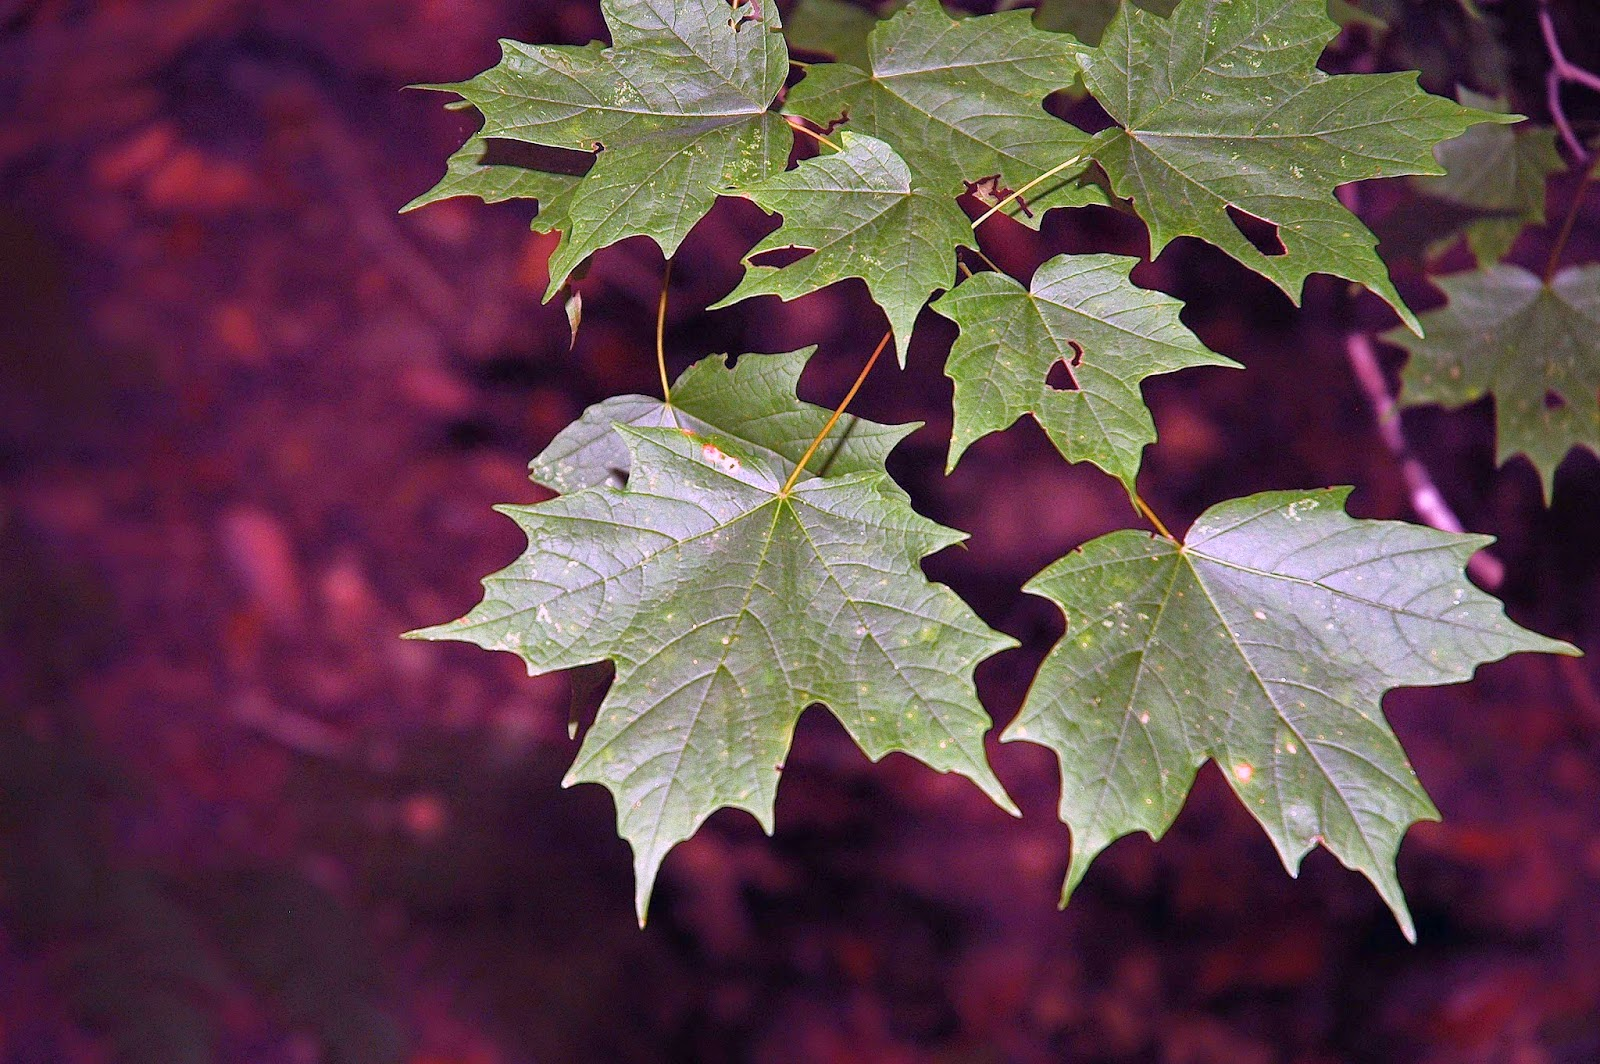 Sugar Maple Acer Saccharum Is By Far One Of The Most Dominant Trees Forests In Eastern US And Canada It An Important Species